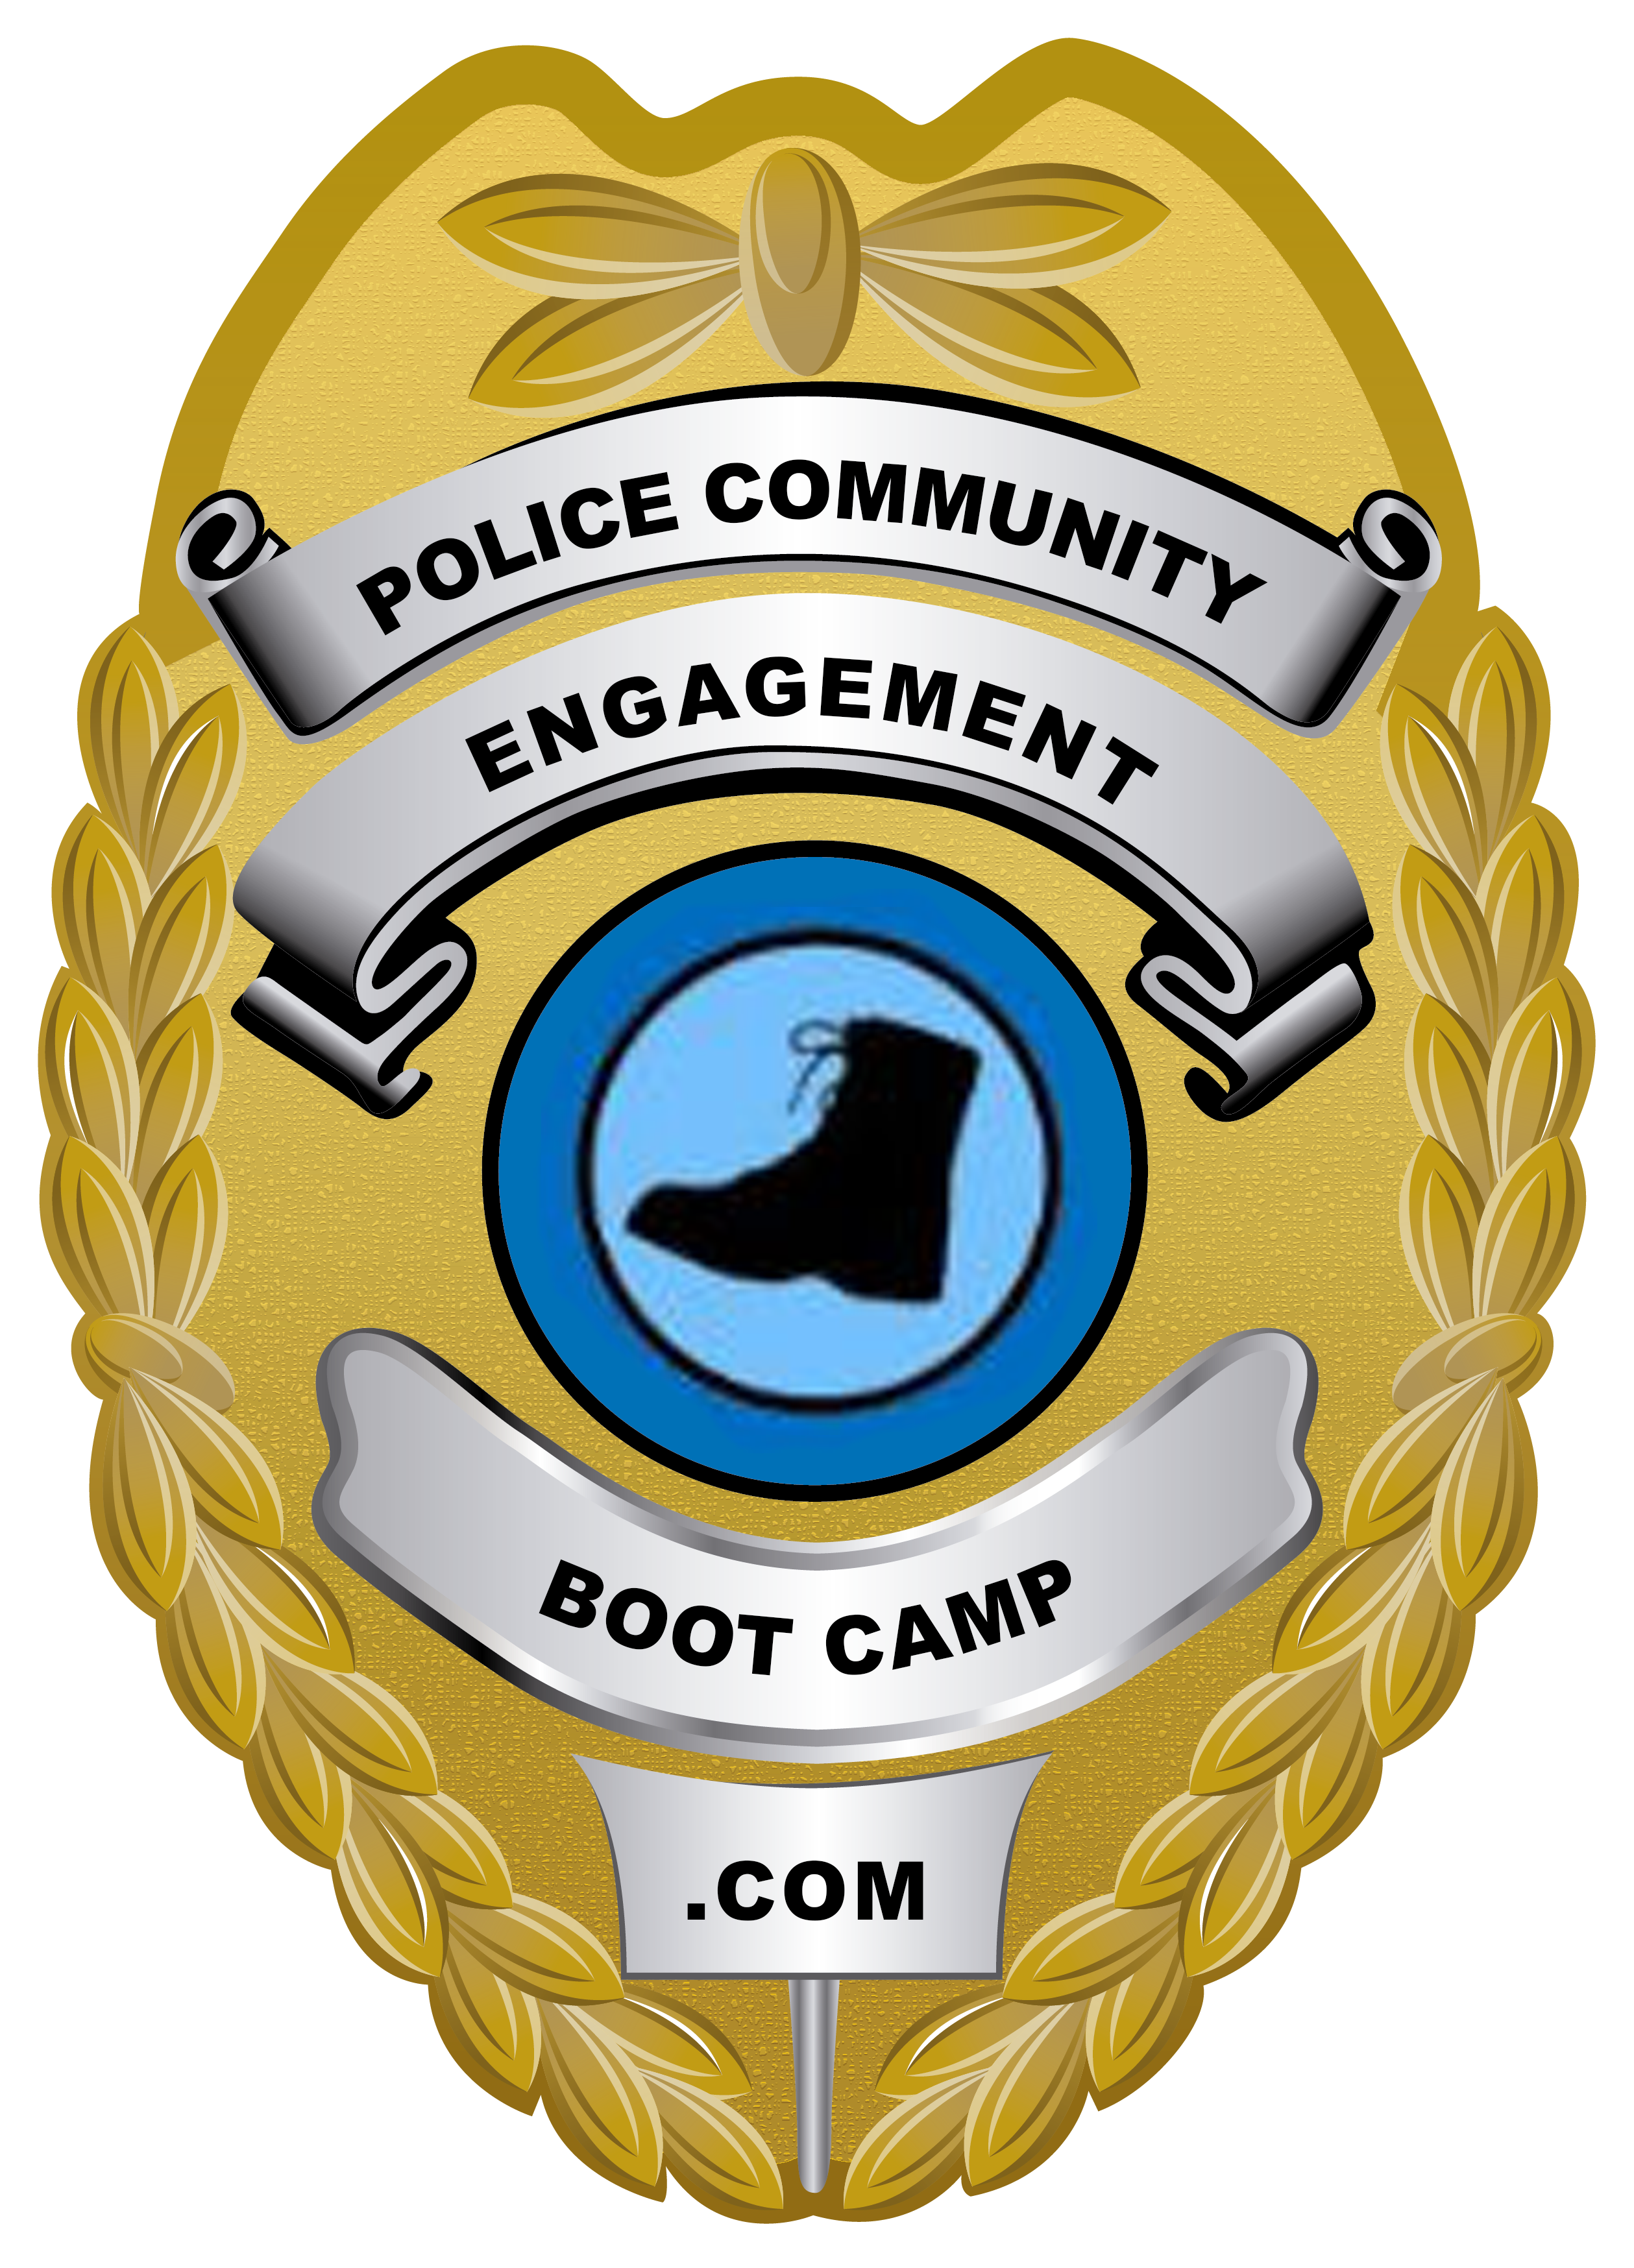 Police Community Engagement Boot Camp in Paradise Valley, Arizona